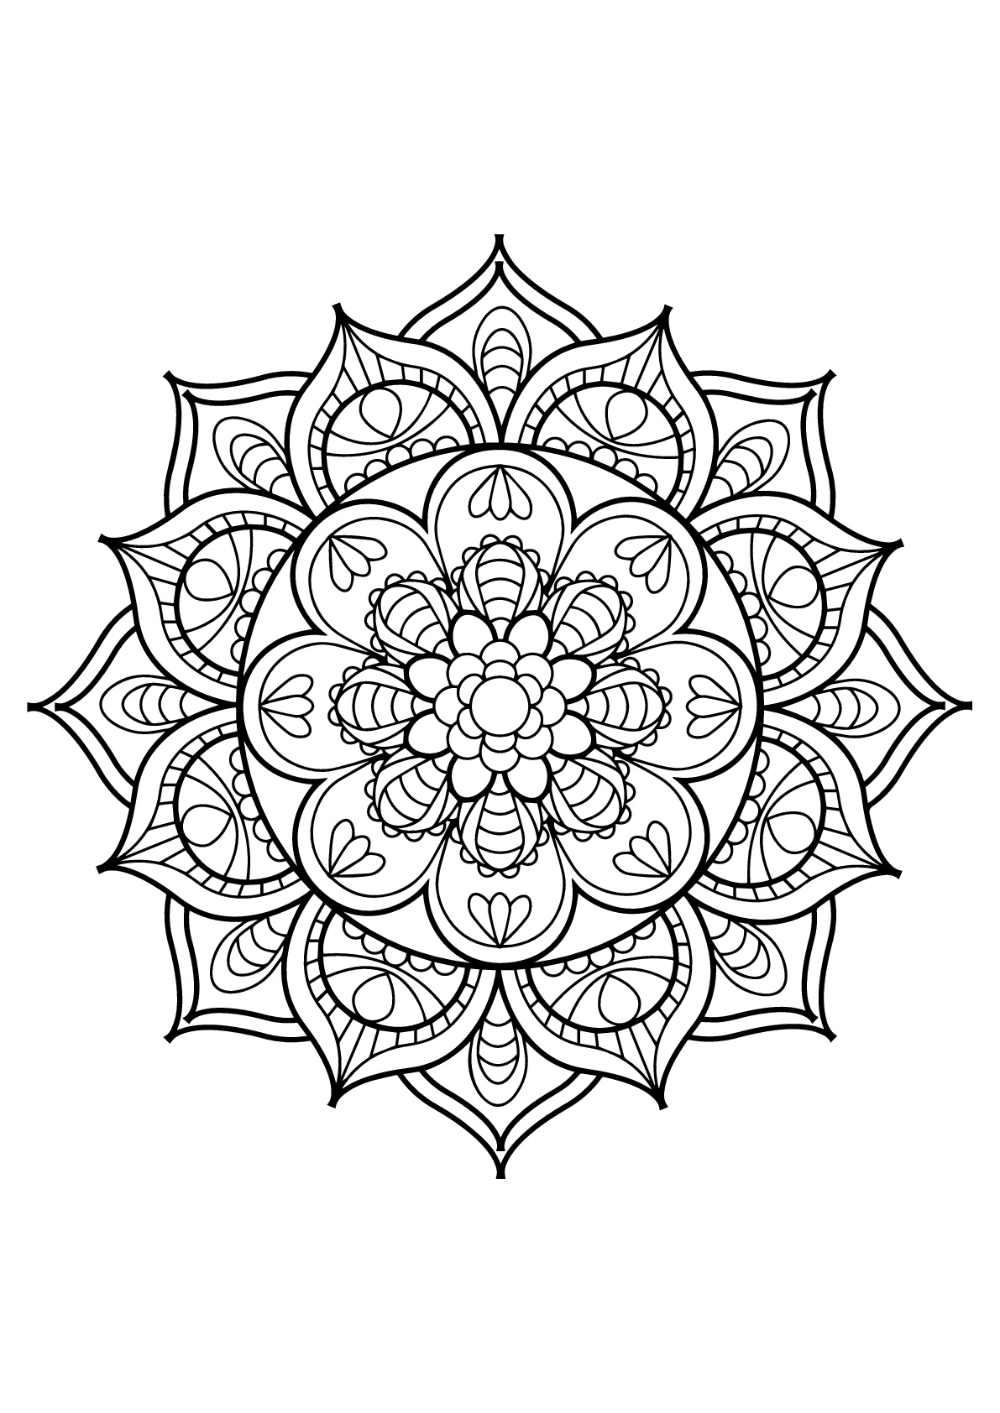 Mandala From Free Coloring Books For Adults 11 Anti Stress Mandala From Free Coloring Book F Mandala Coloring Pages Mandala Coloring Mandala Coloring Books